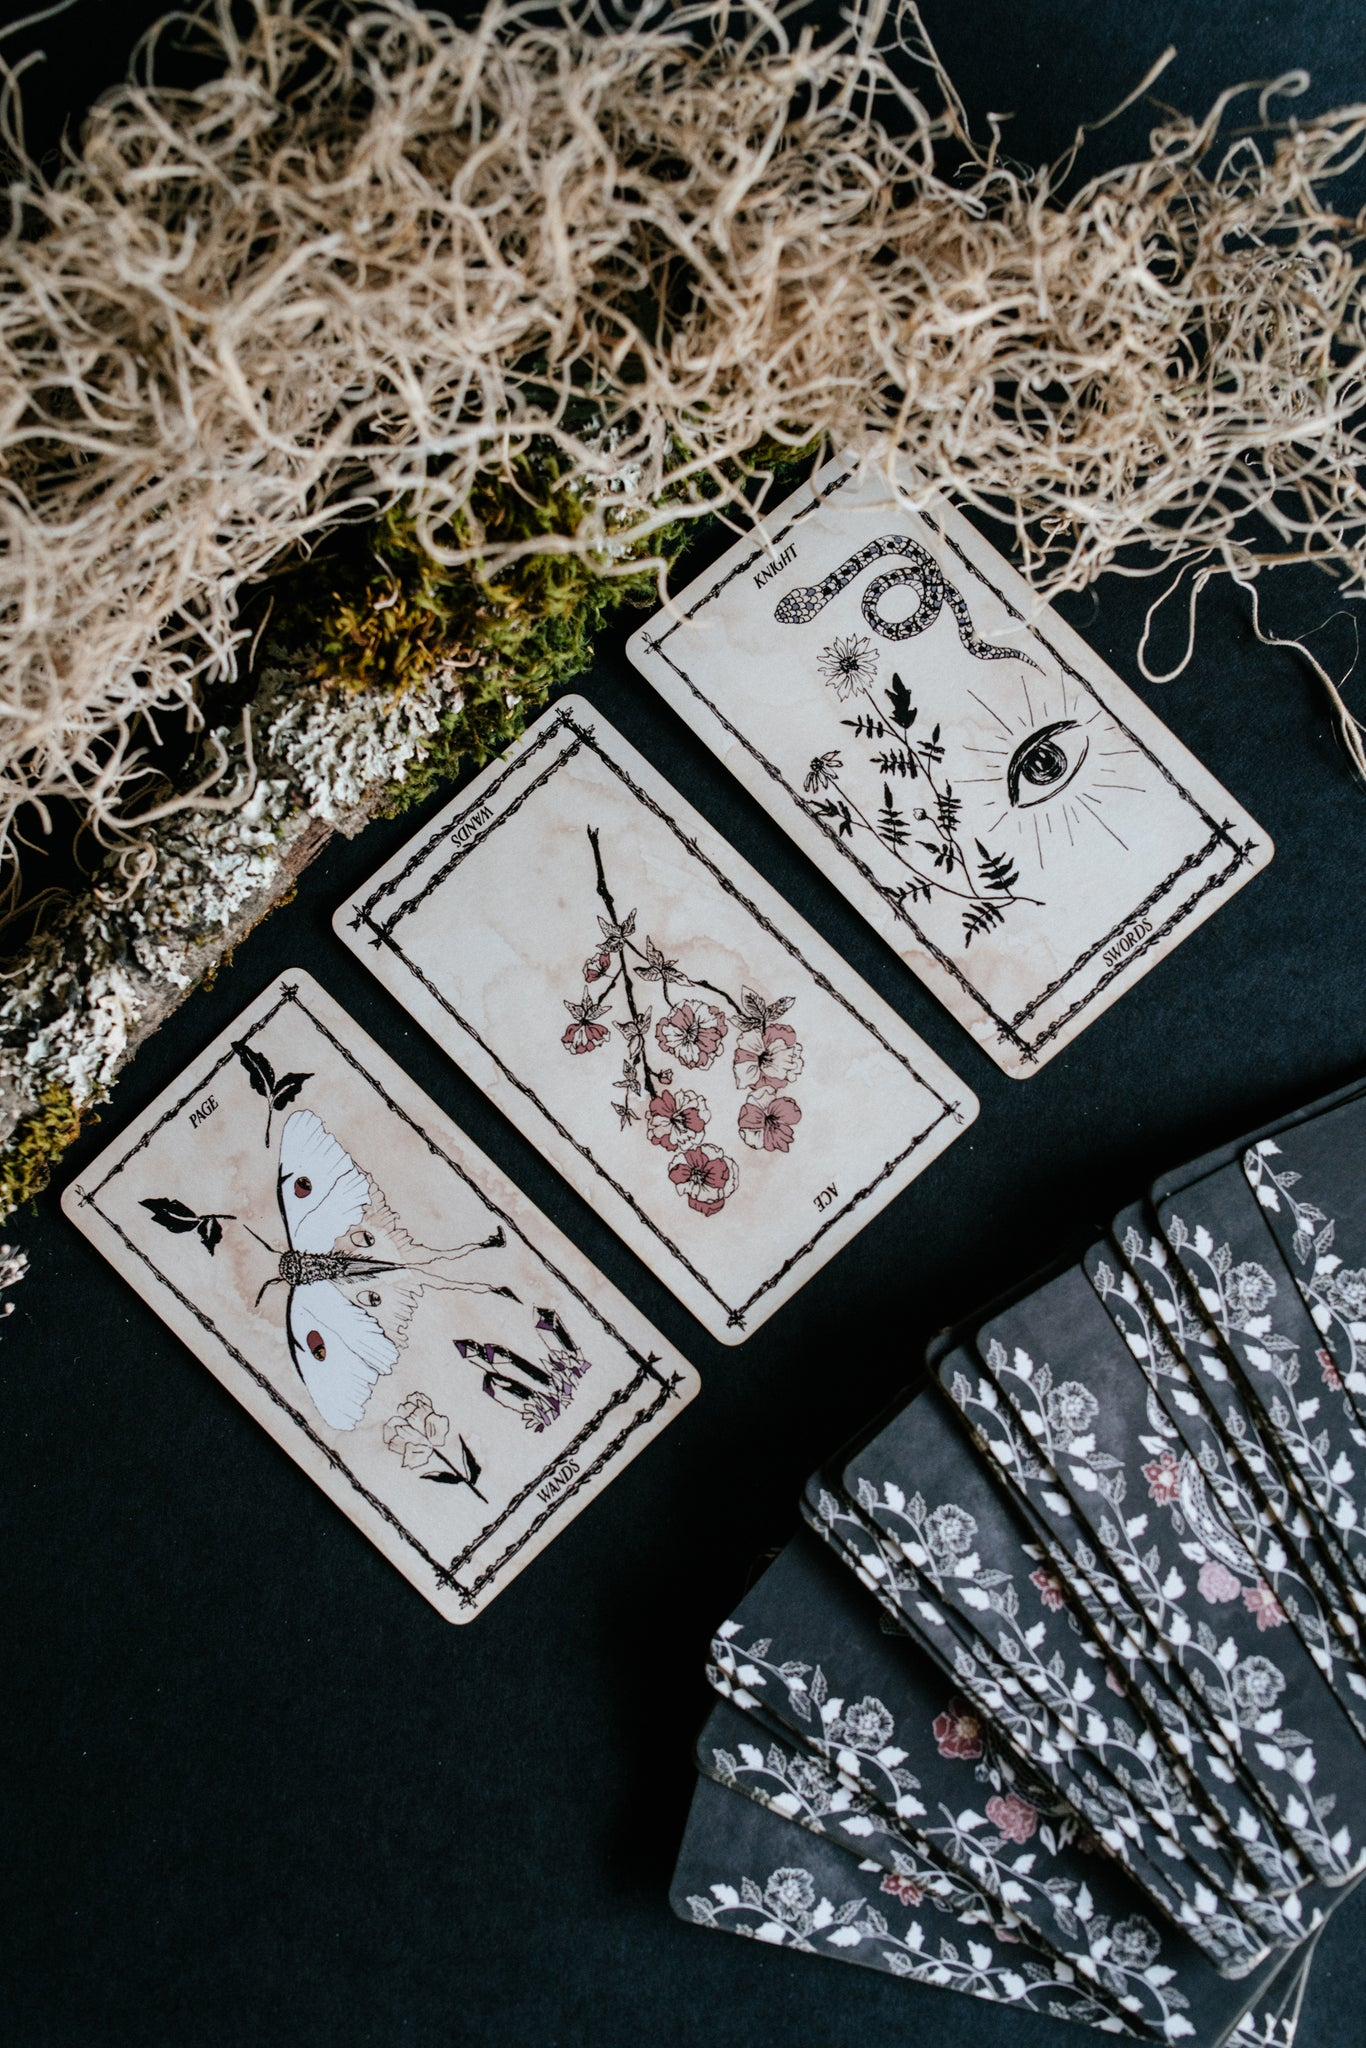 Shop Portland Local Altar PDX Northwest Handmade Independent Artists Tarot Cards Deck Ophidia Rosa Leila & Olive Spreads Magic Paganism Arcana Gothic Boho Chic Witch Fortune Telling Predictions Minimalist Floral Spiritual Blog